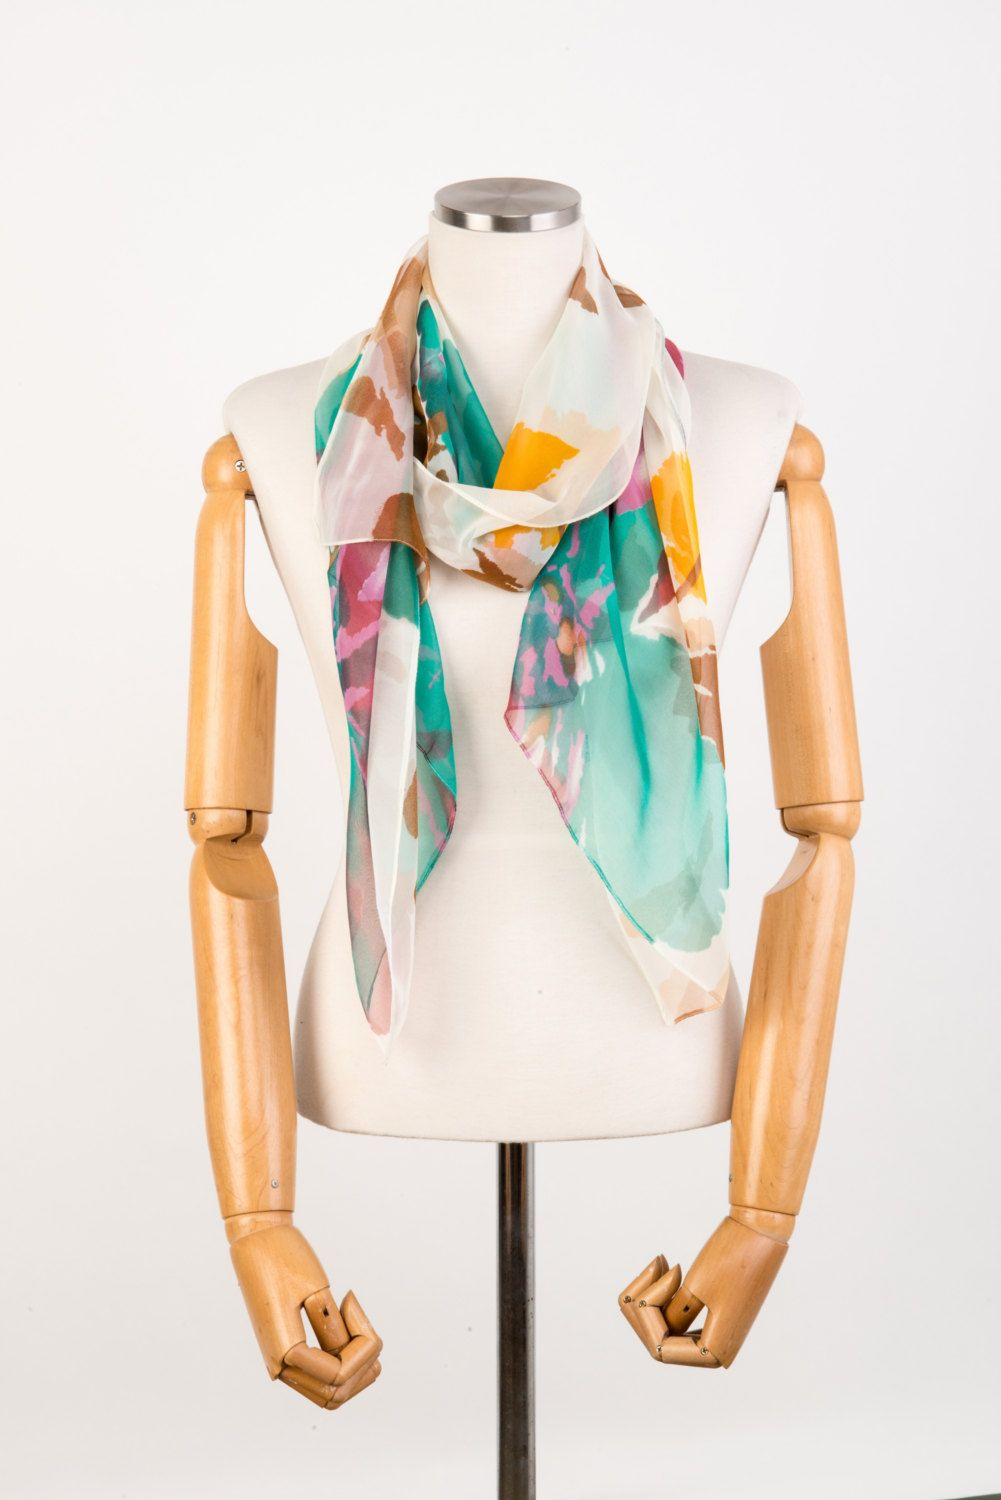 Fashion Infinity Scarf, Green Silk Lightweight Chiffon Scarf, Silk Scarves Romantopia. Gift for her. Made to order. by LEOKOXX on Etsy